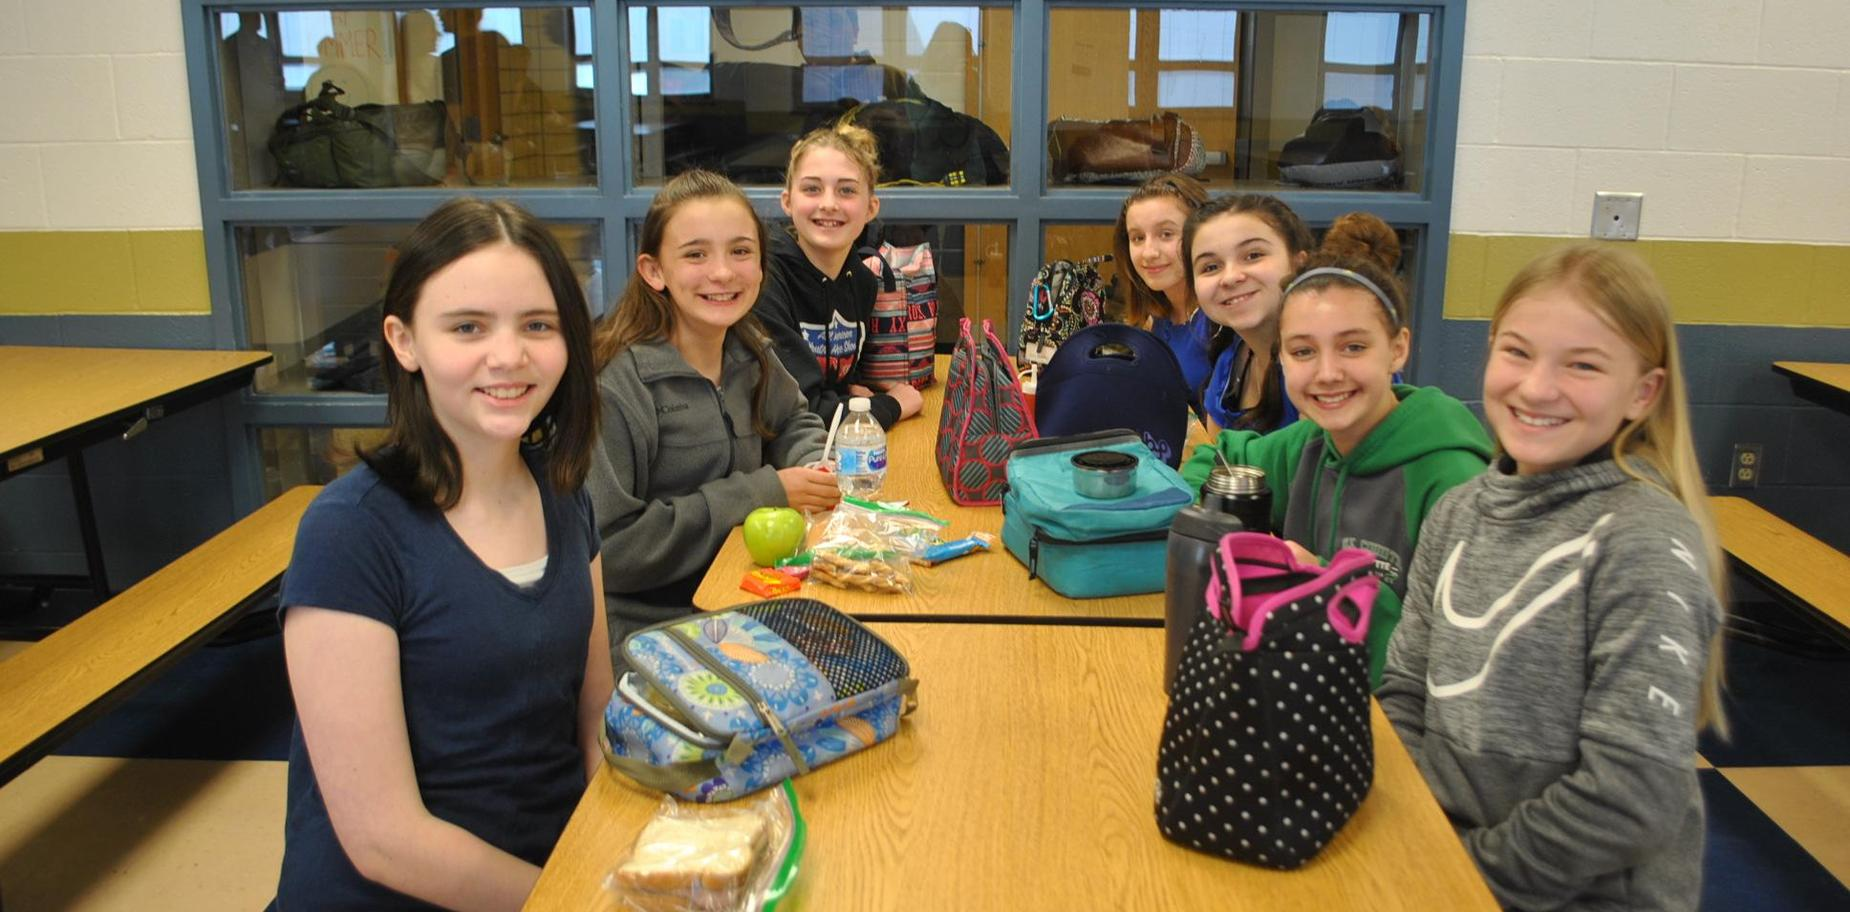 Students in lunch room